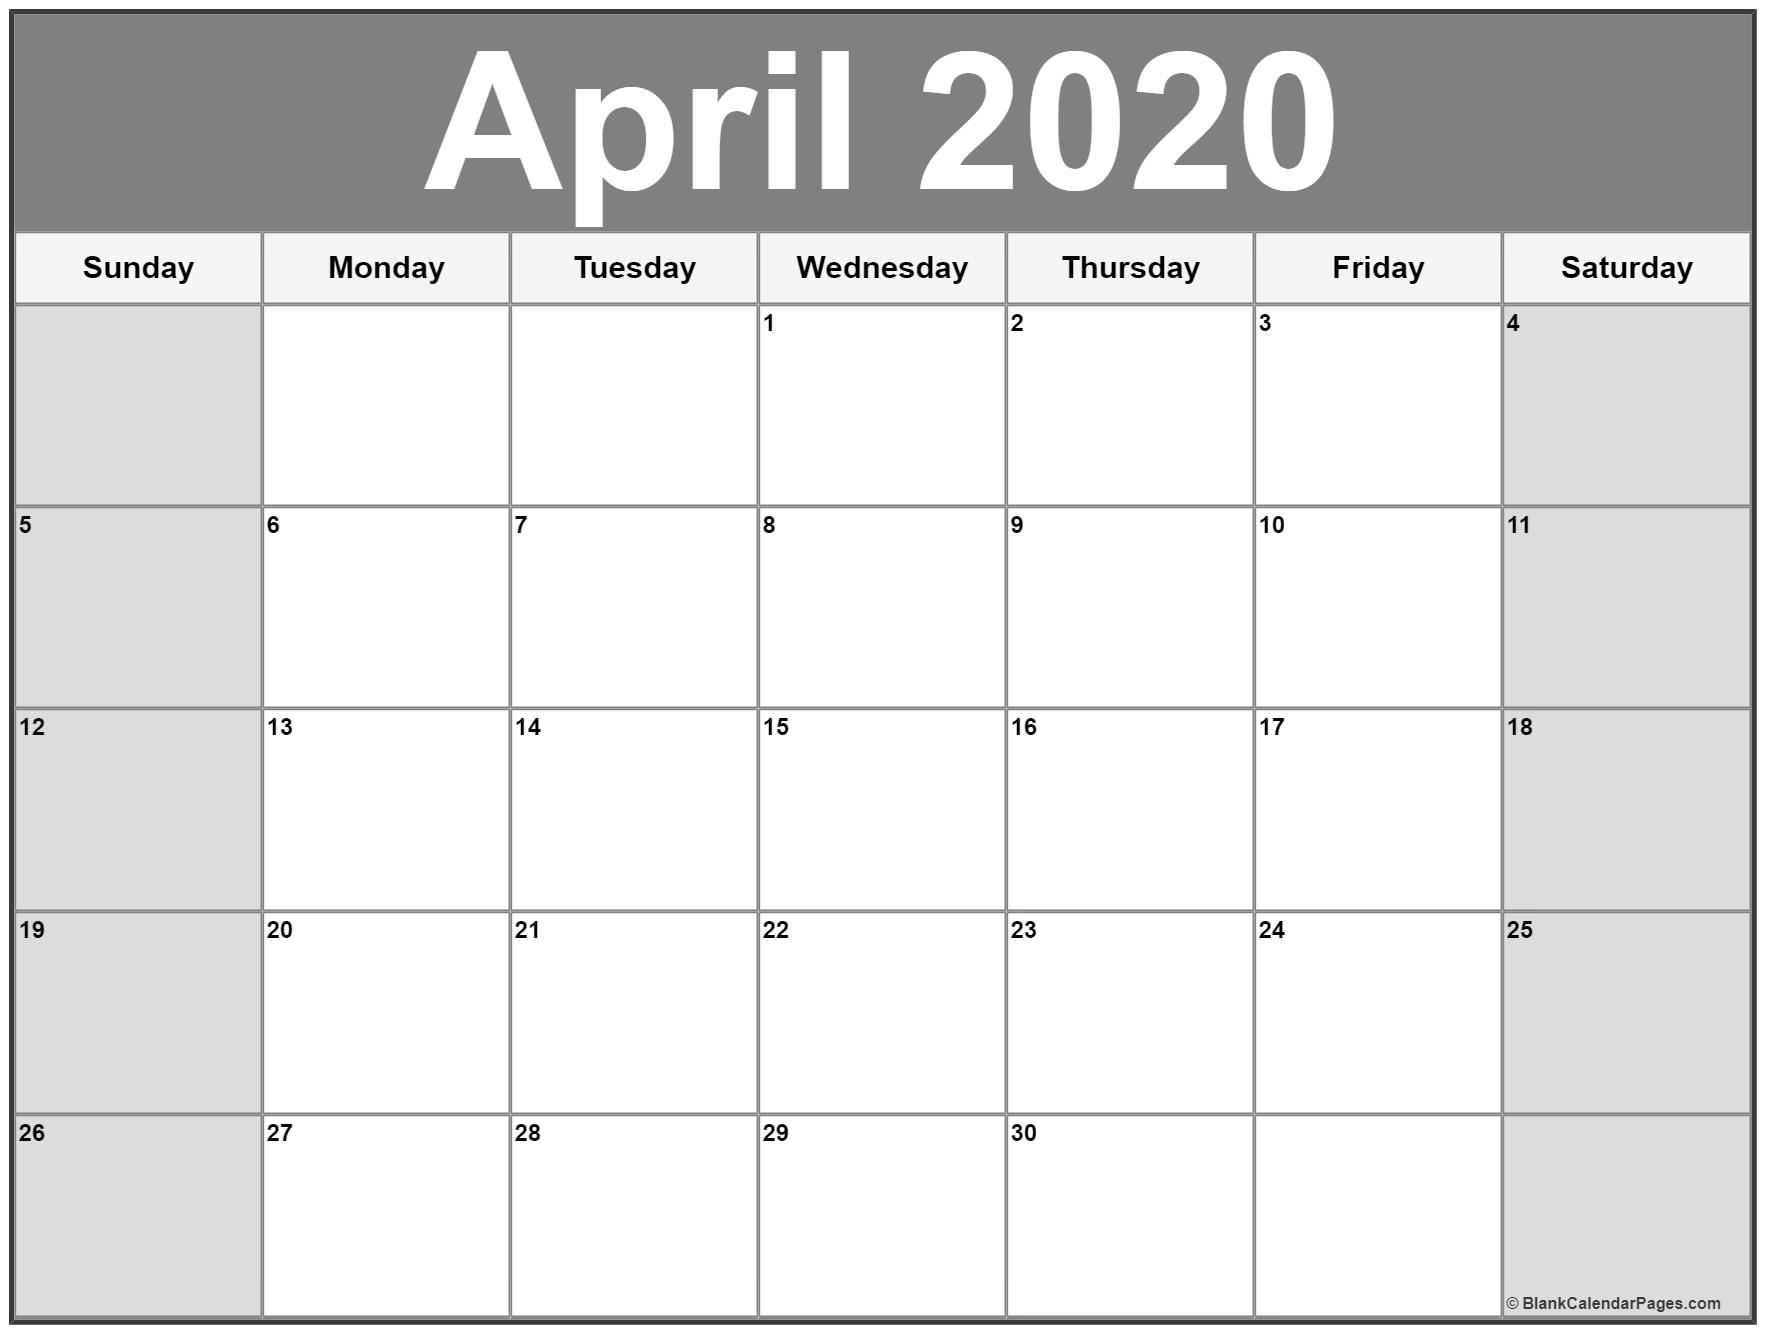 April 2020 Calendar | Free Printable Monthly Calendars within Free Printable 5 Day Monthly Calendar